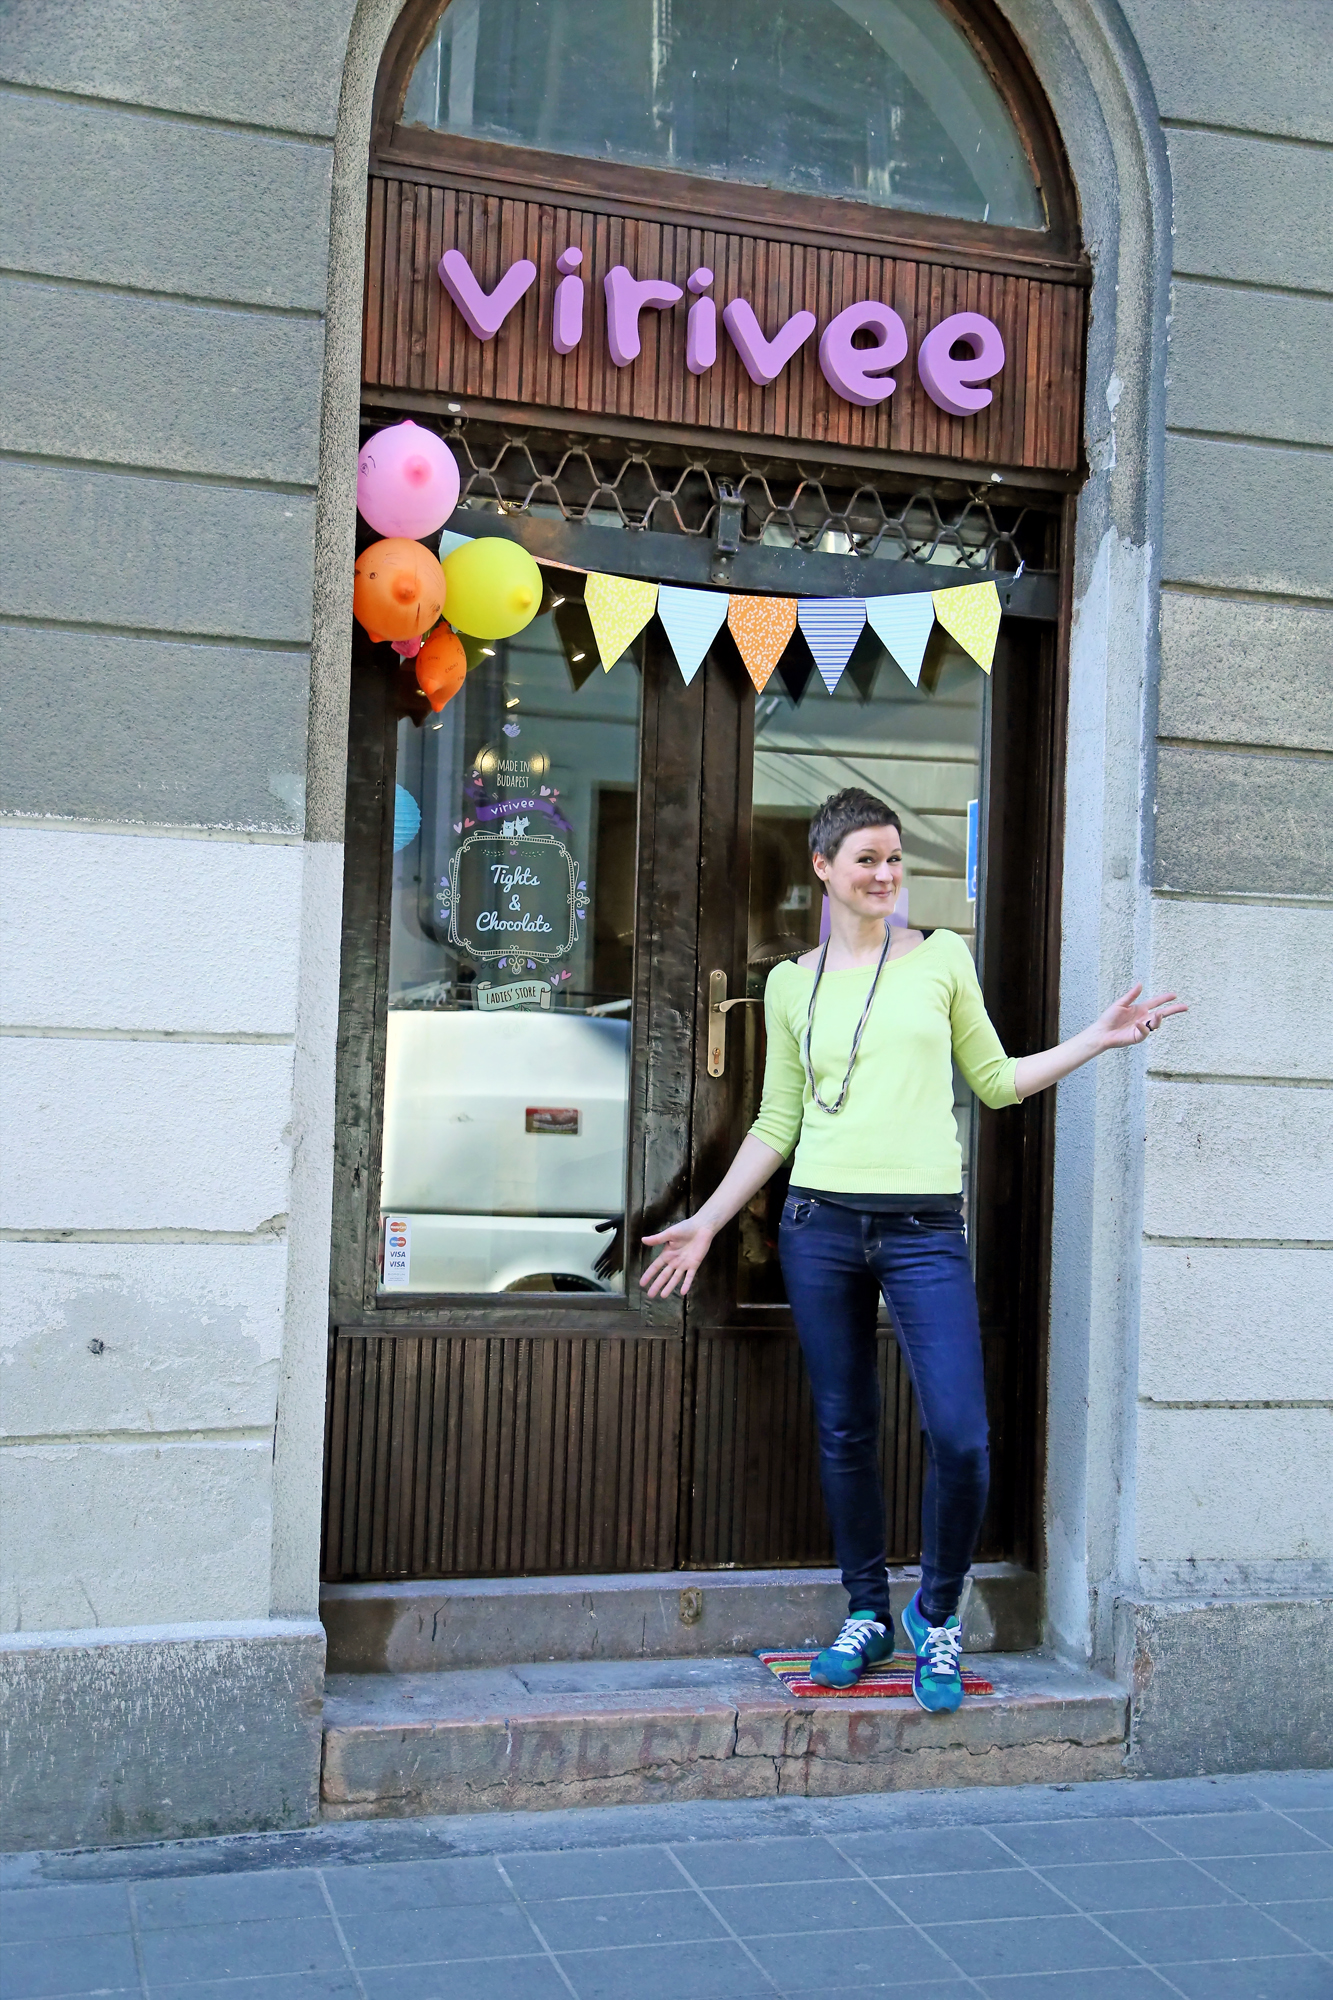 Viri in front of the Virivee store in Budapest